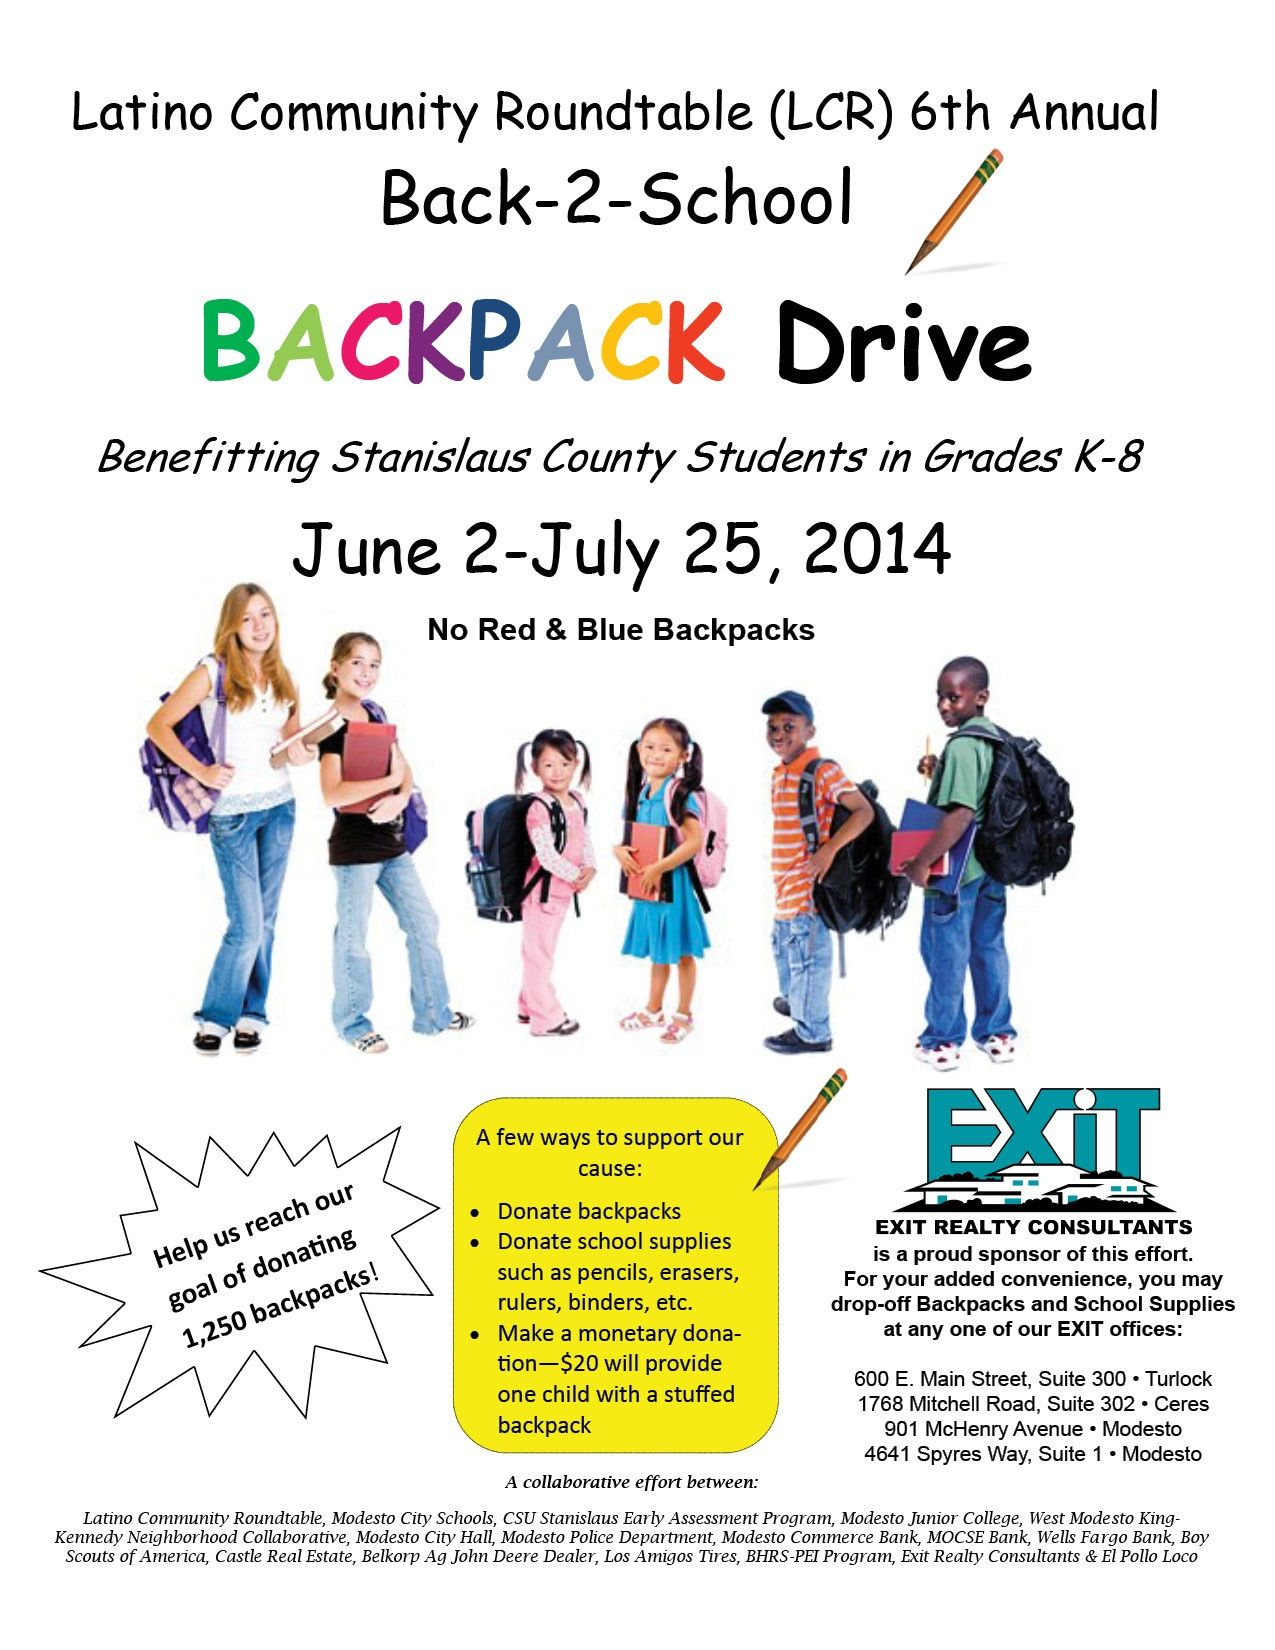 Don T Forget To Drop Off Your Backpacks For These Kids In Need At Any Of Our Exit Locations Exitrealtyconsul With Images Stanislaus County Exit Realty Children In Need